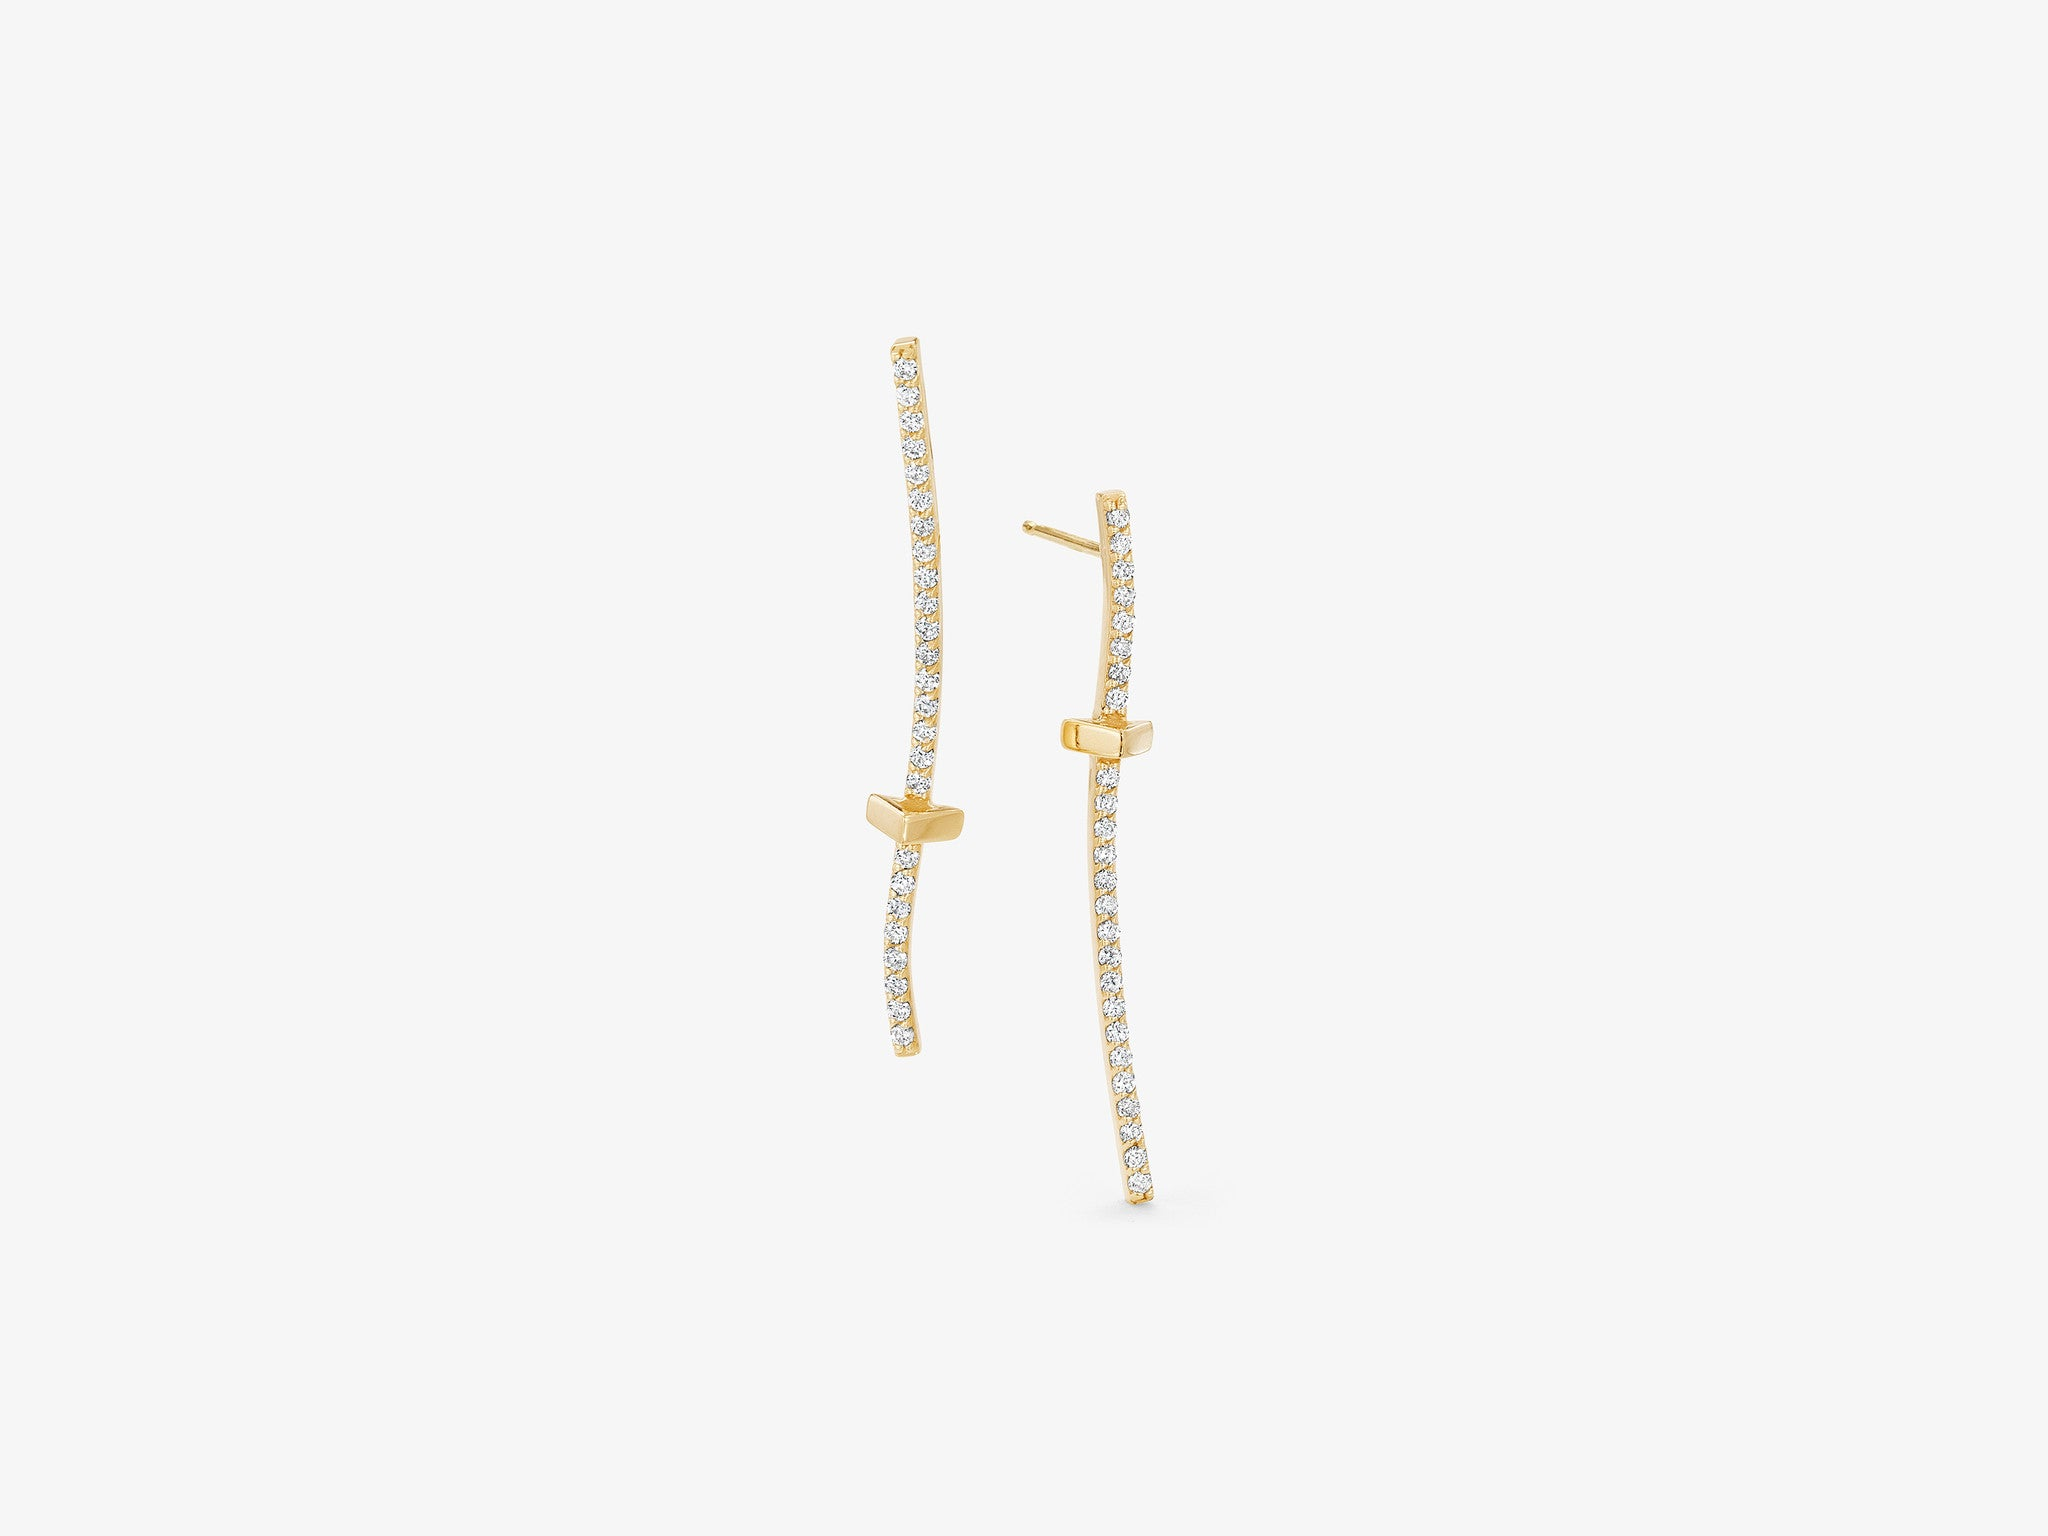 Curved Diamond Pave Bar Earrings with Triangle Stations